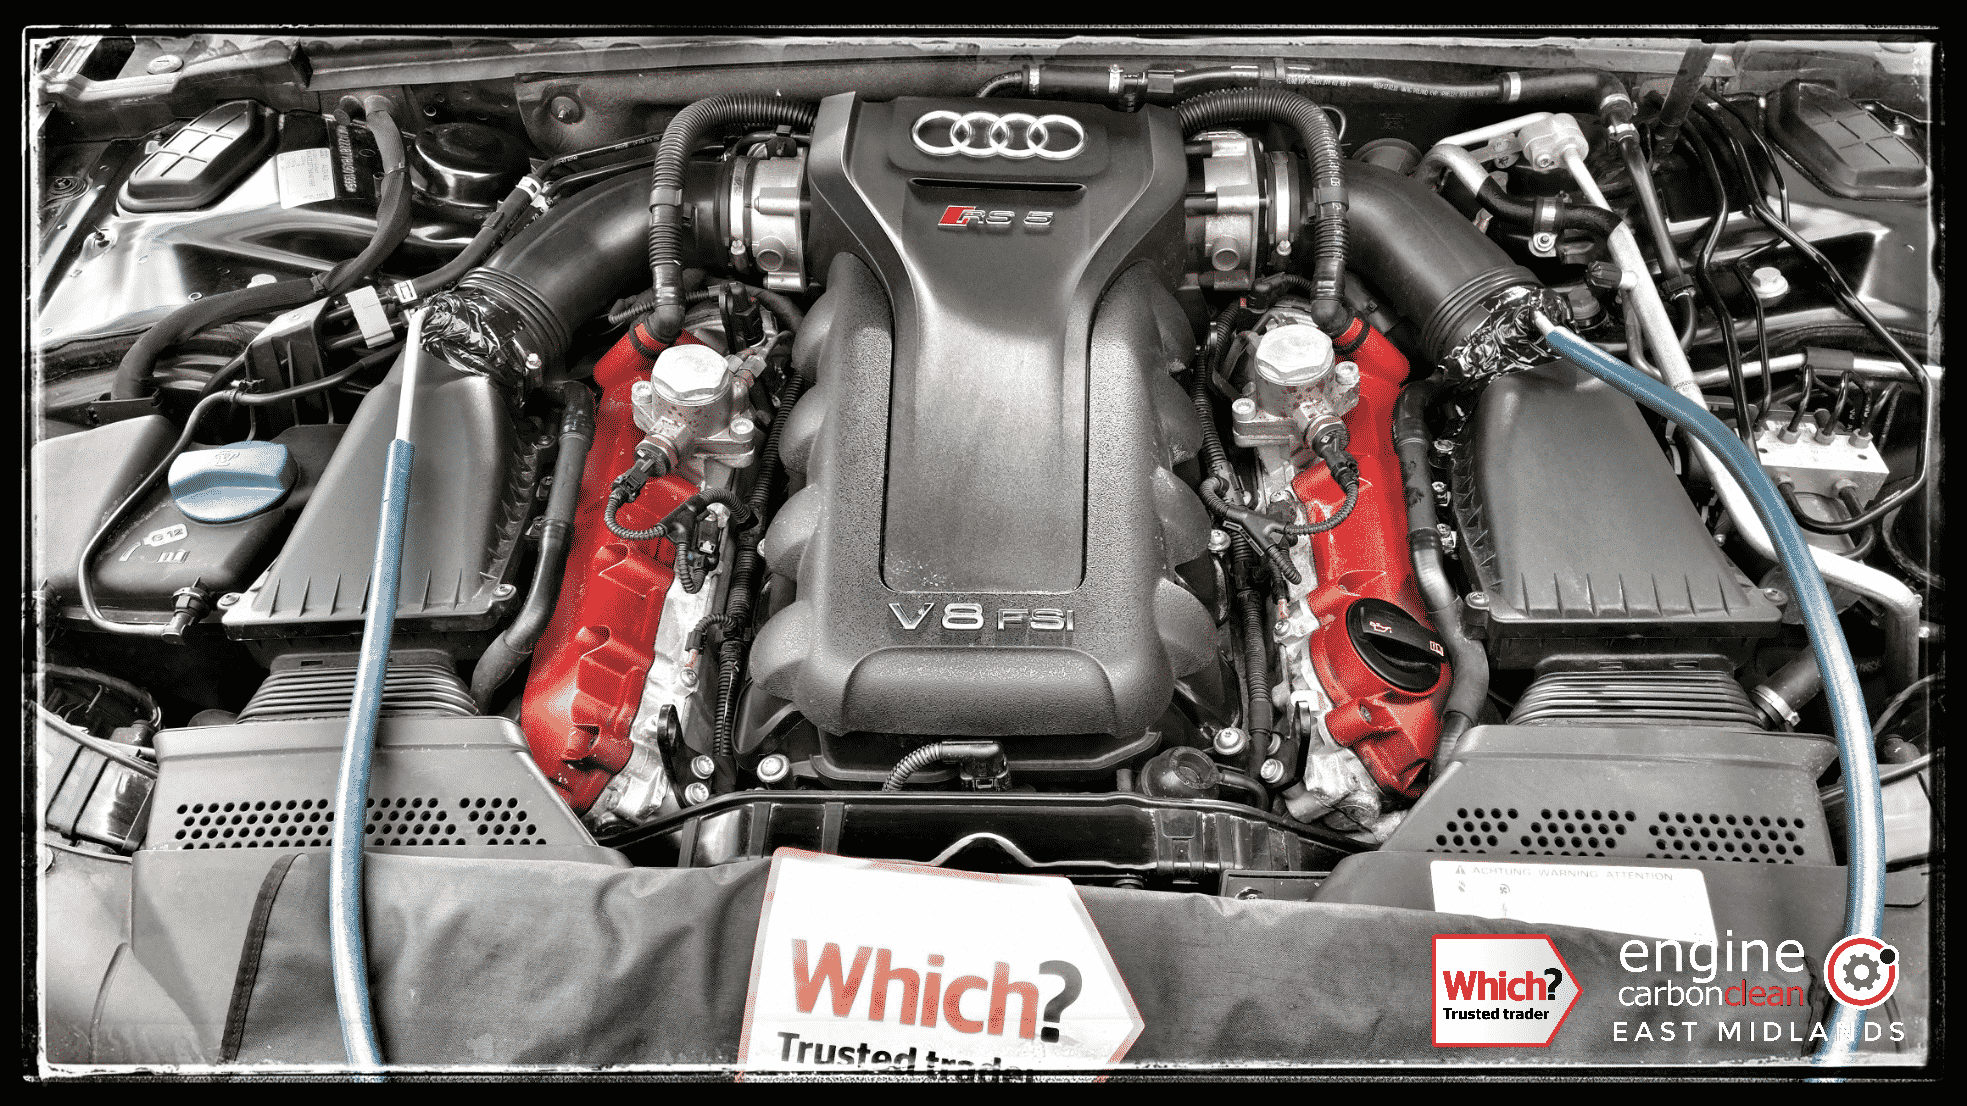 Engine Carbon Clean Engine Carbon Clean On An Audi Rs5 4 2 V8 2010 25 965 Miles